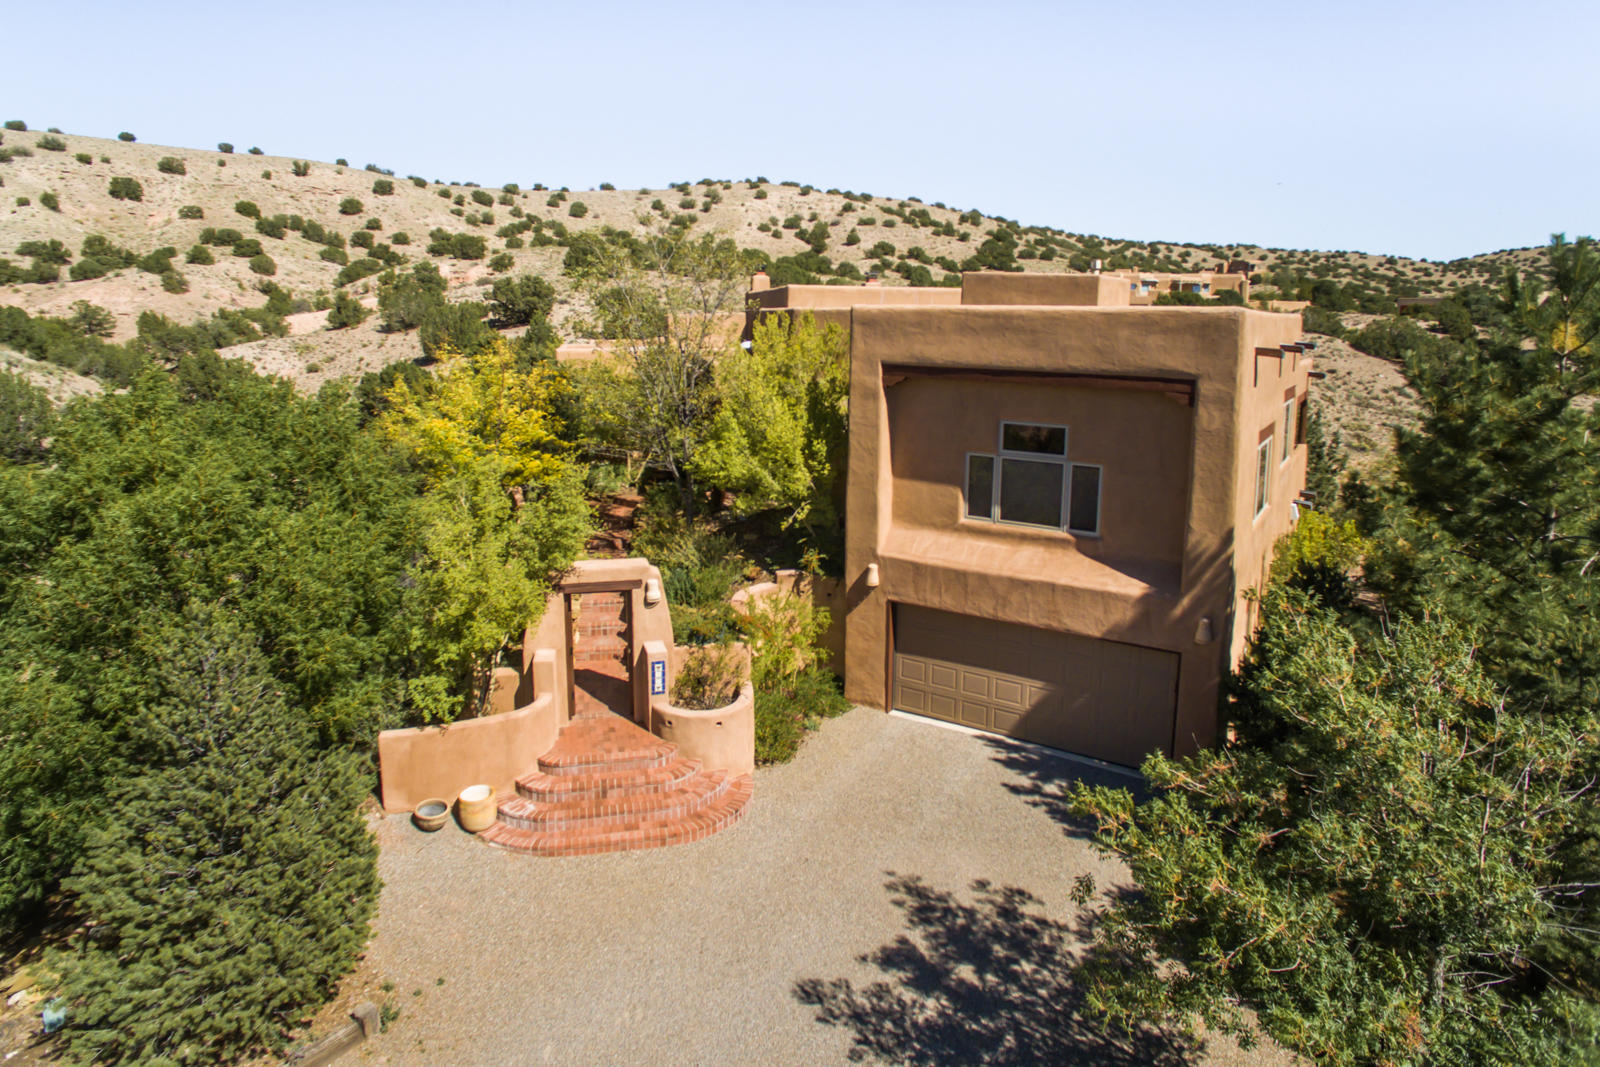 37 CALLE CIENEGA, PLACITAS, NM 87043